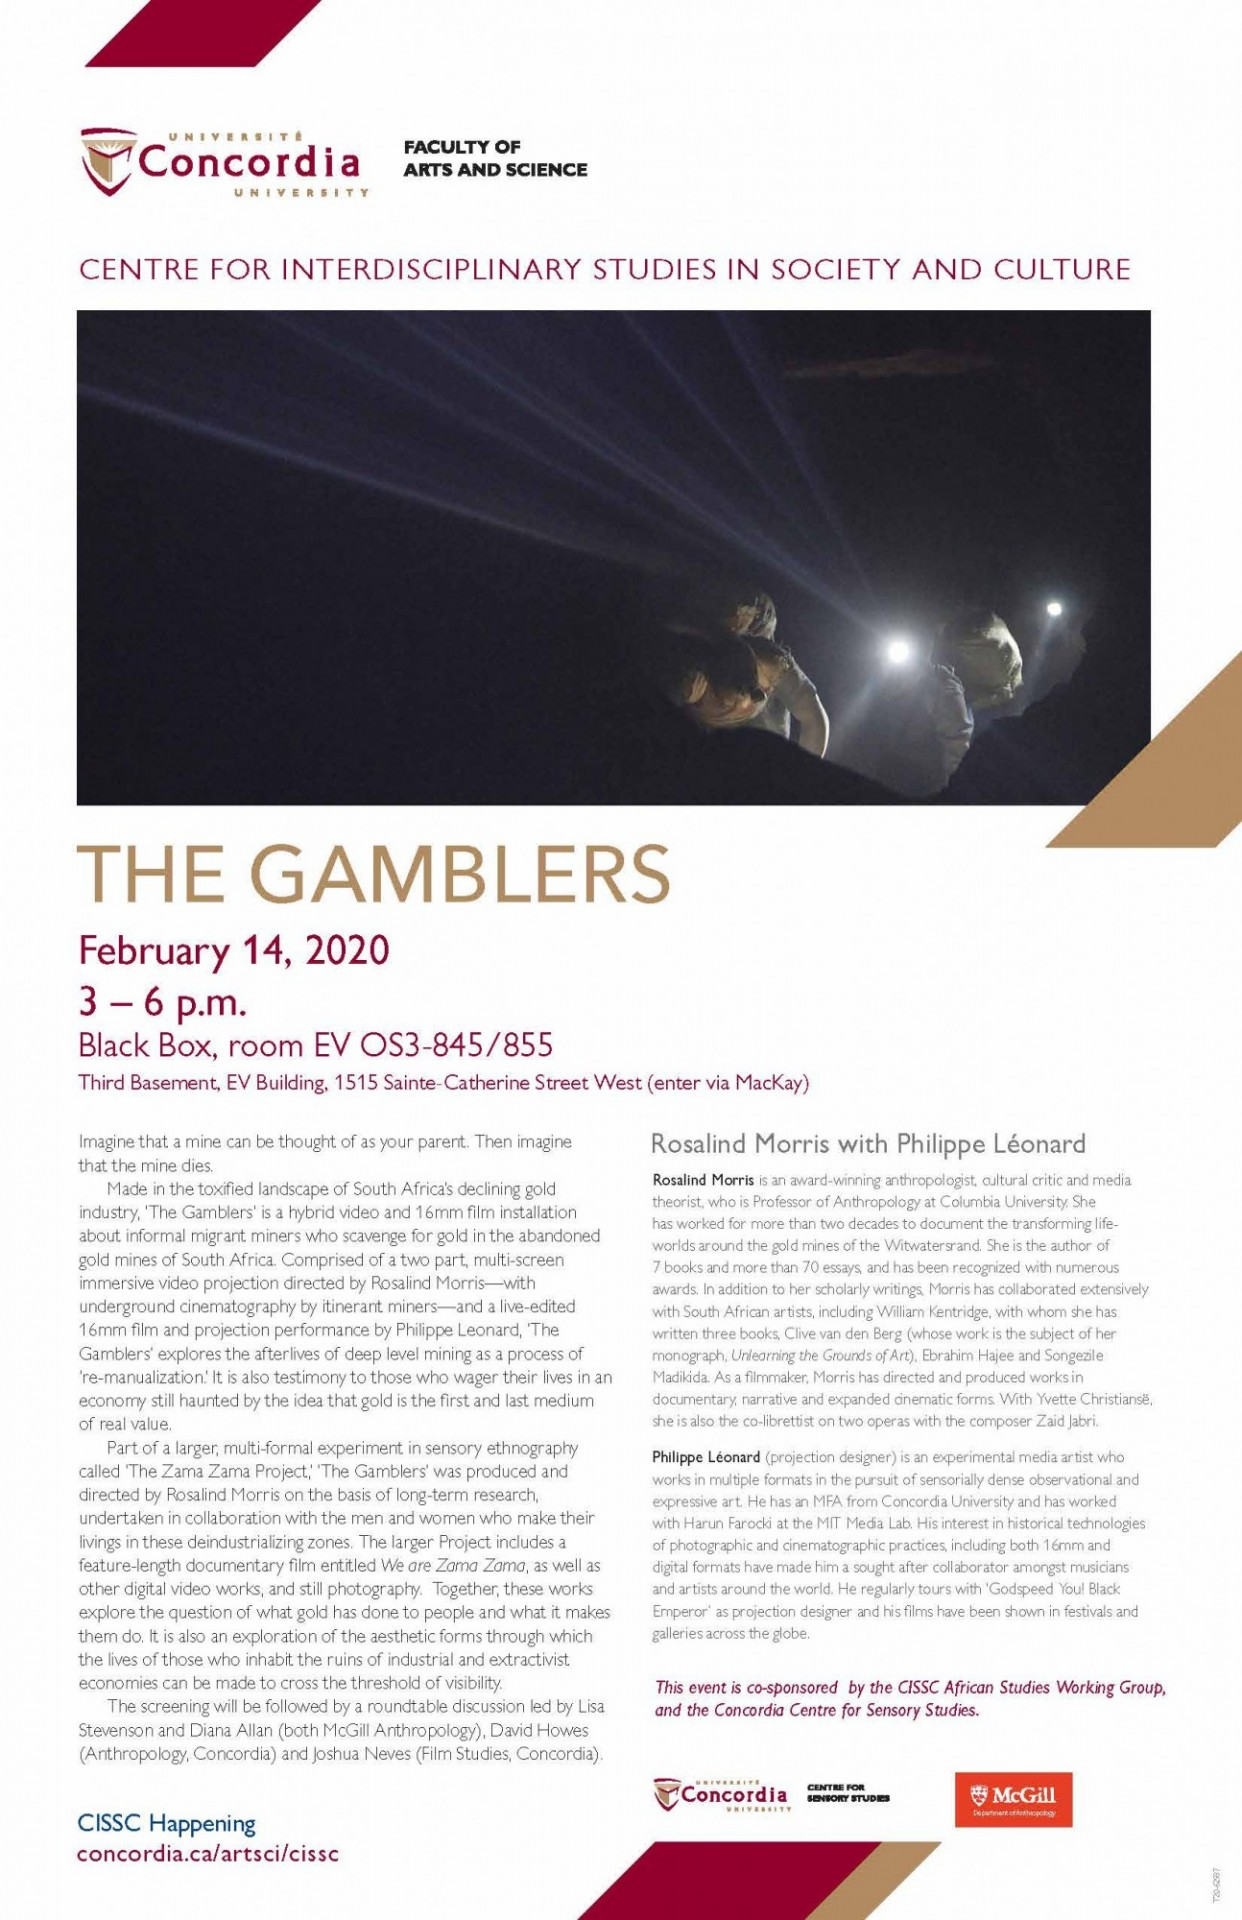 Poster for 'The Gamblers' featuring text about the project and an image from the film.